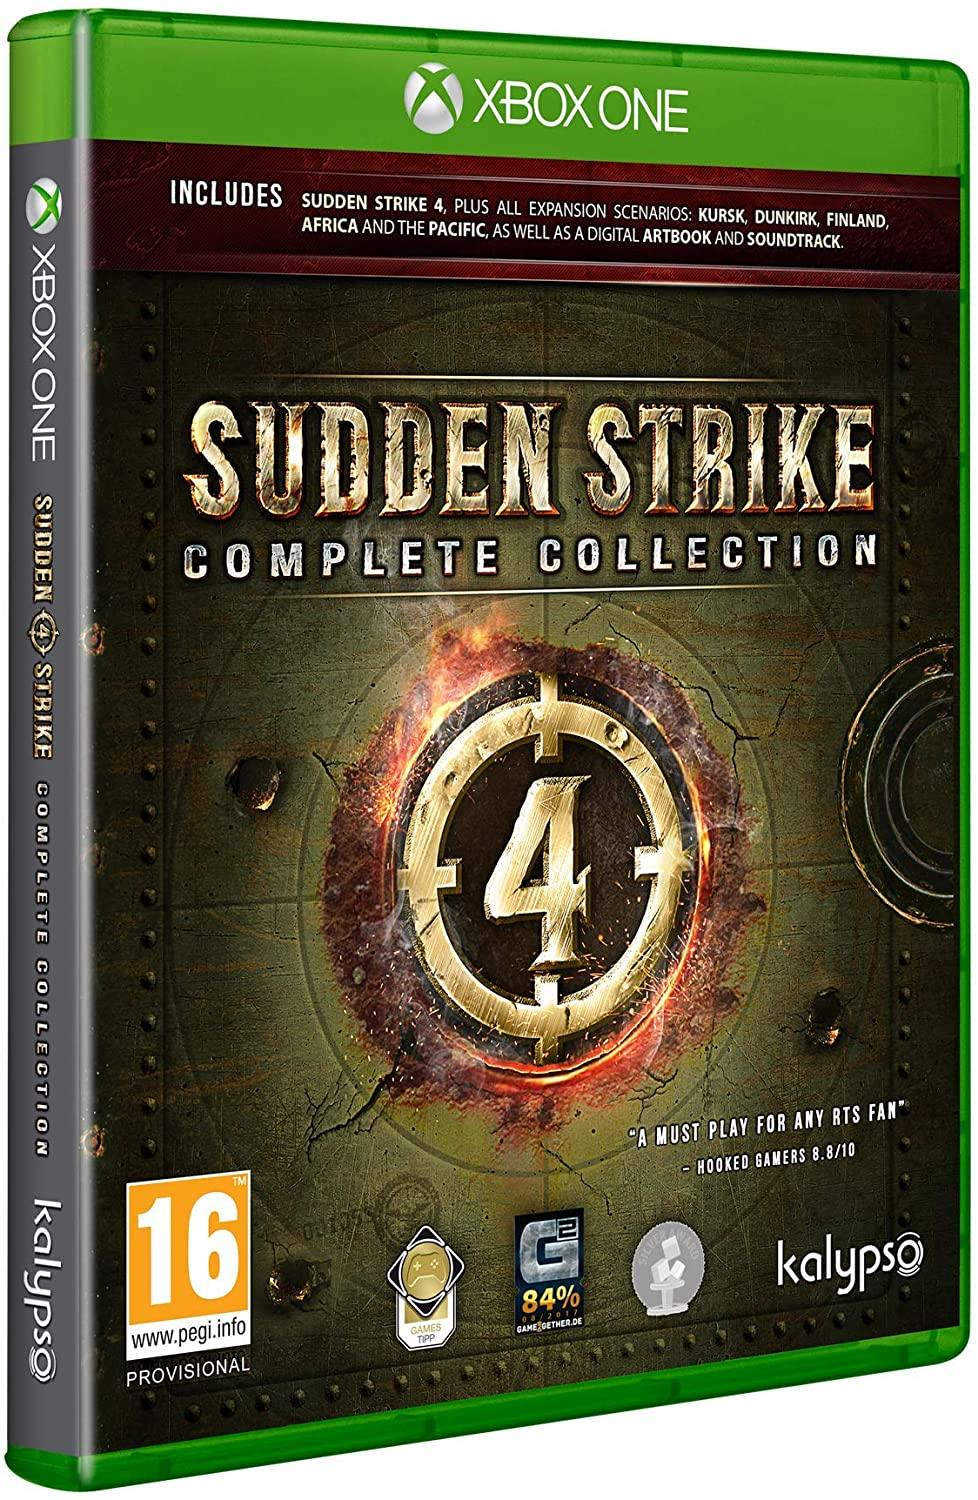 Sudden Strike 4 Complete Collection Xbox One